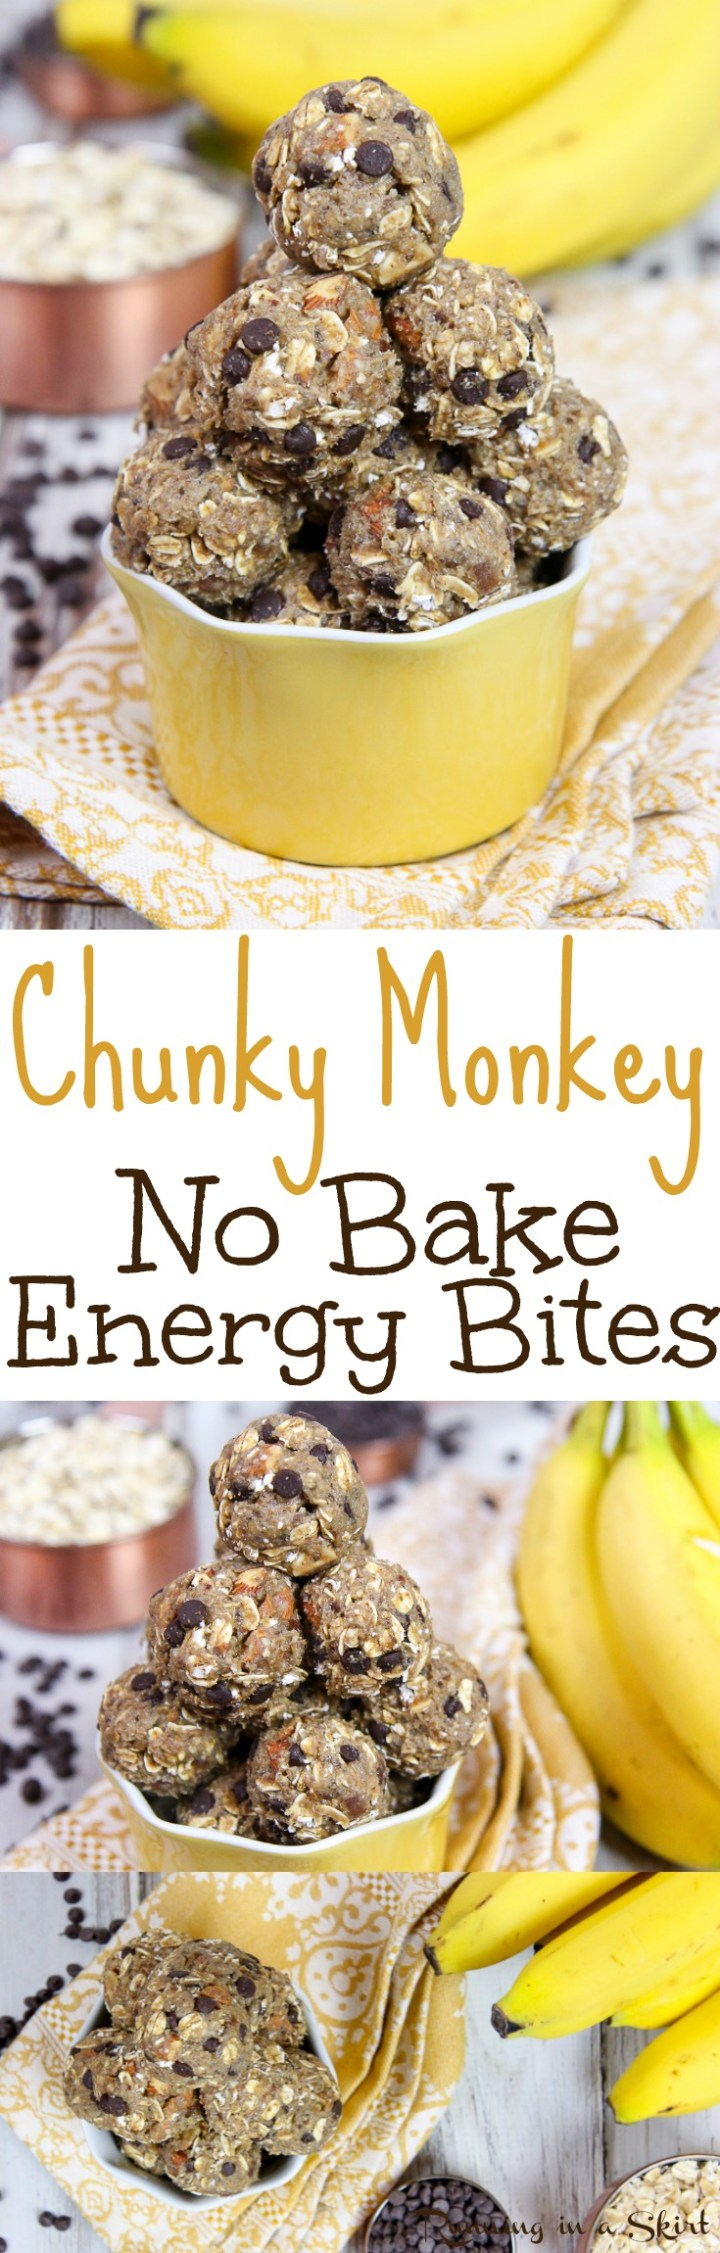 Chunky Monkey Healthy No Bake Energy Bites recipe. Easy, clean eating and perfect for quick snacks  Uses banana, dates, chocolate, almonds and without peanut butter. Vegetarian, Vegan & Gluten Free friendly / Running in a Skirt via @juliewunder